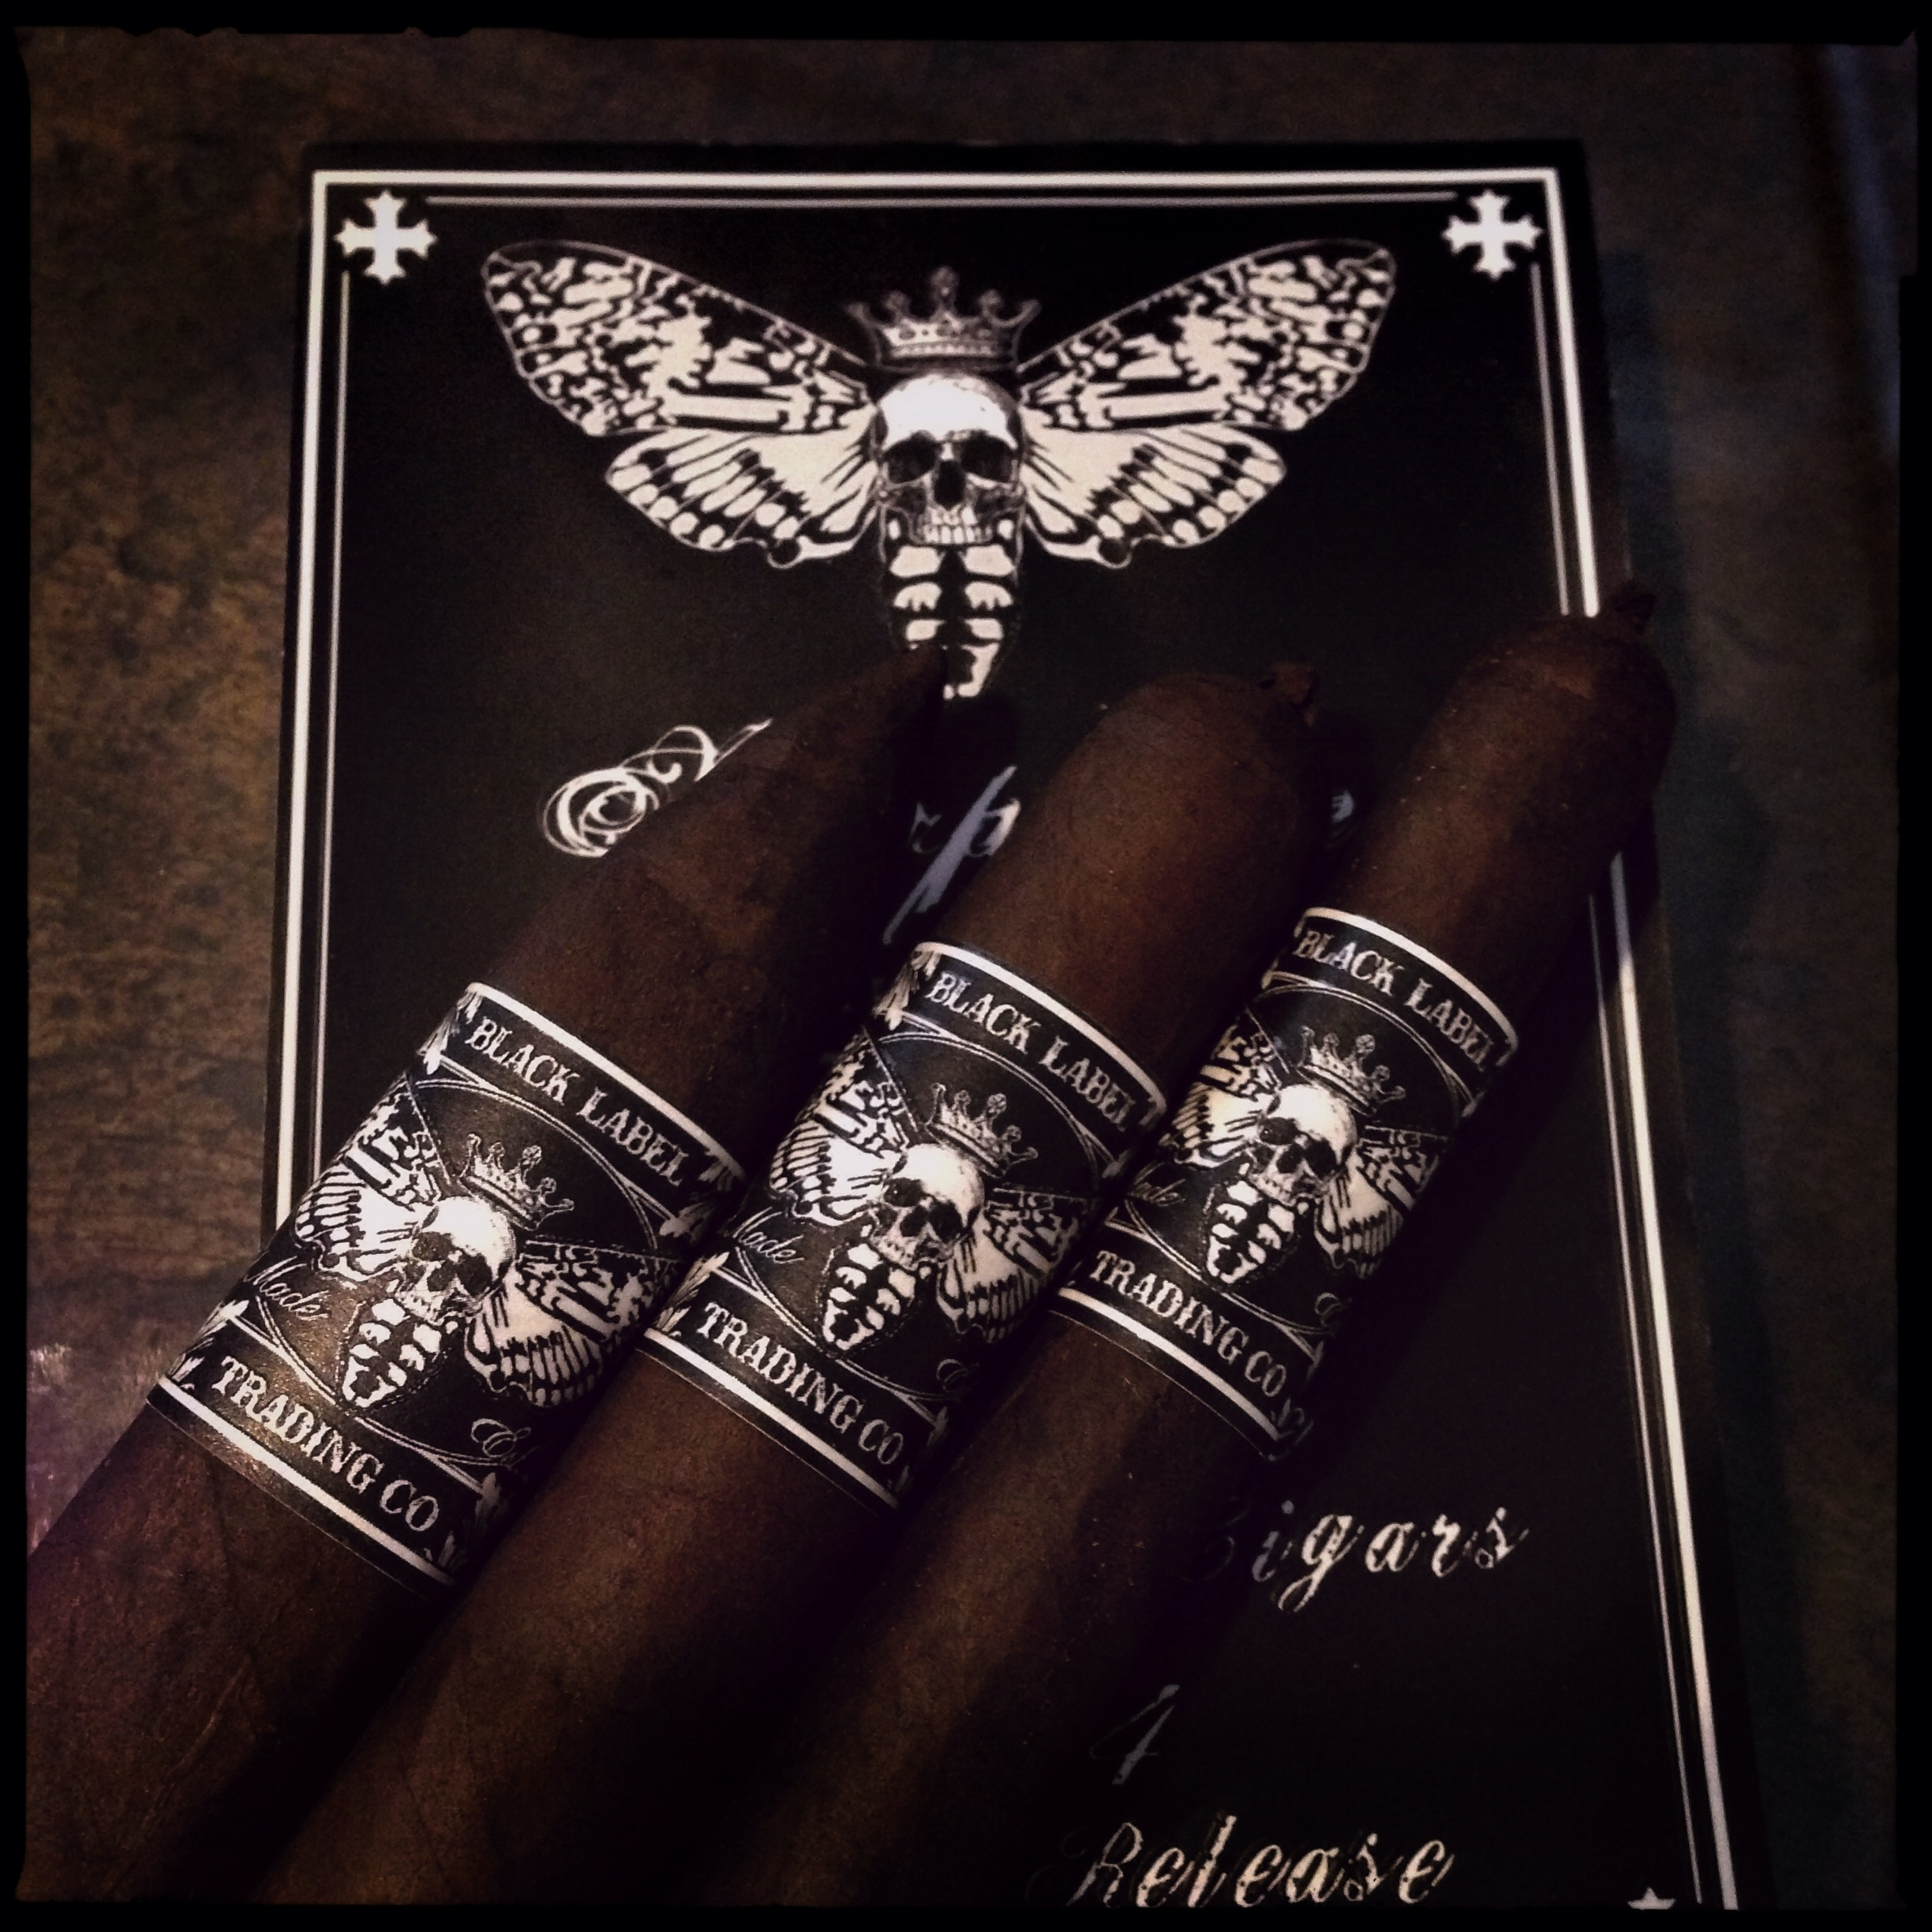 Cigar News: Black Label Trading Company Morphine 2016 Now Available